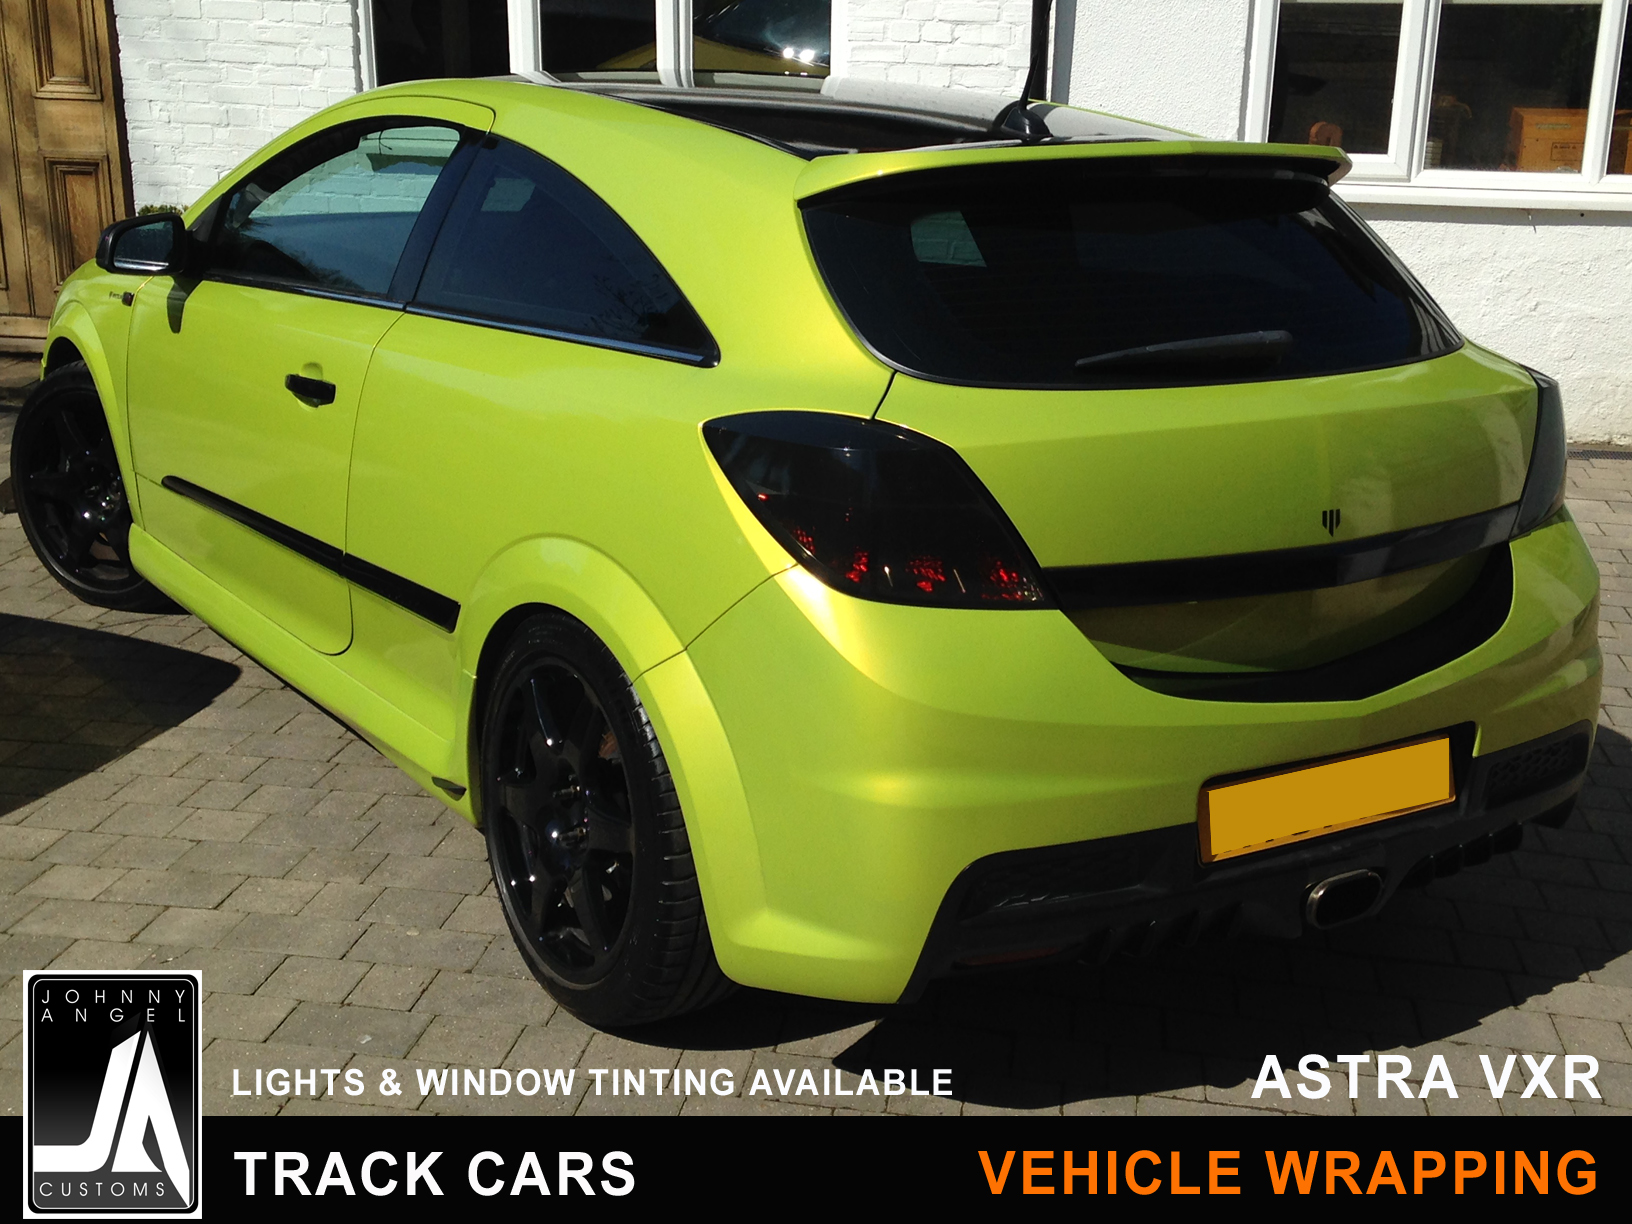 Johnny Angel Customs Track Cars Vehicle Wrapping Astra VXR p5